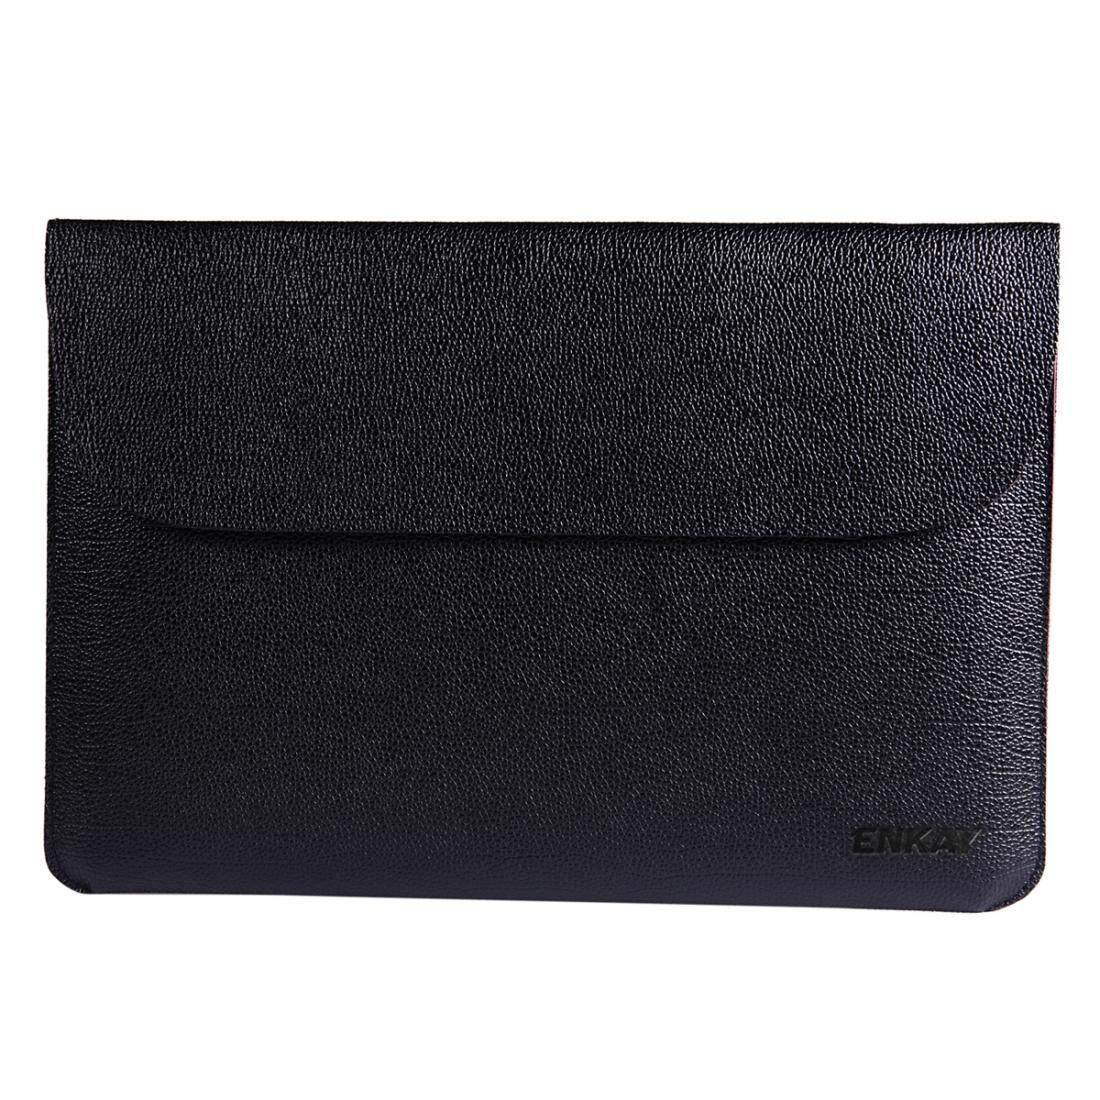 ENKAY Cross-section Ultra-light Ultra-thin PU Leather Liner Bag Computer Bag Protection Leather Case for MacBook Air 11 inch (Black)